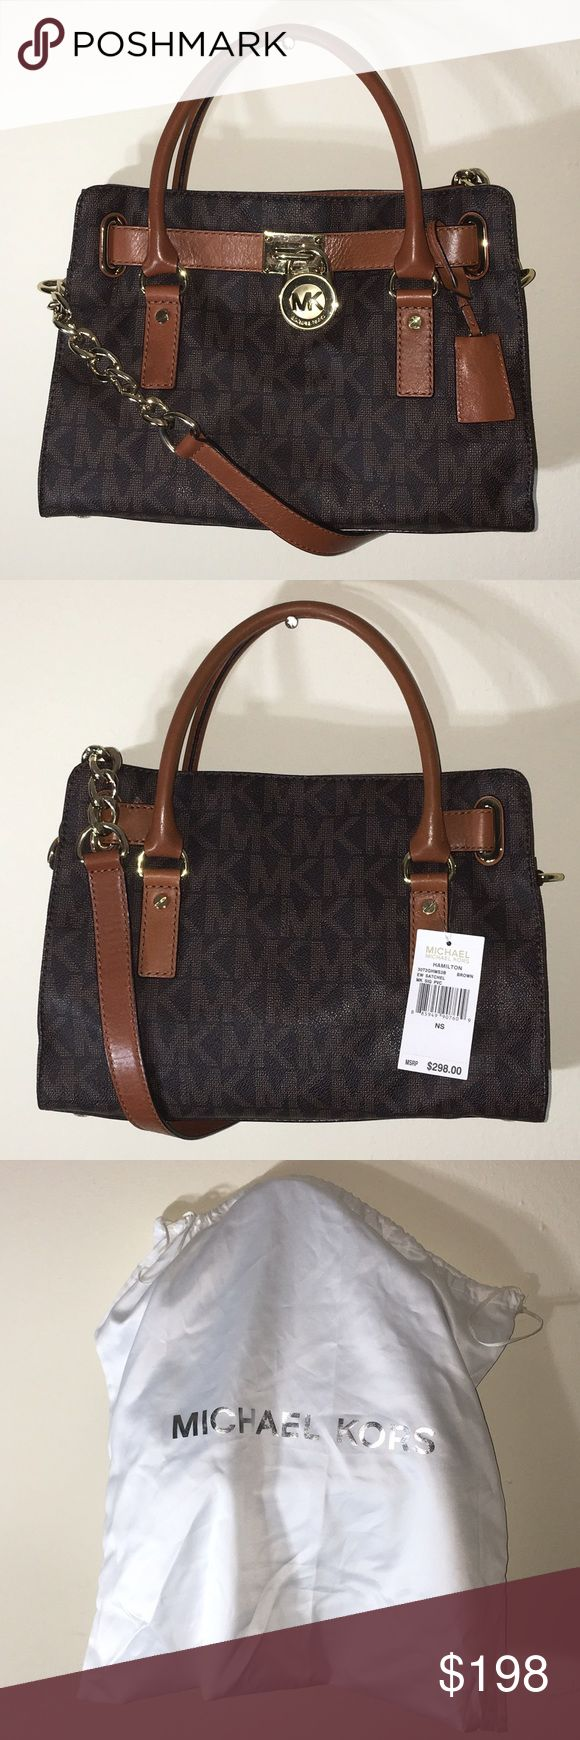 Michael Kors brown logo Hamilton Satchel with tag This is a 100% authentic MK bag with tag attached as shown in photo. It was the one on display, so there is very slight normal wear and tear from it being the one on display. Comes with dust bag. Make me an offer OR when you bundle 3 or more items from my closet you only pay shipping ONCE, you get 15% OFF, and a FREE JEWELRY RELATED GIFT!!! Michael Kors Bags Satchels